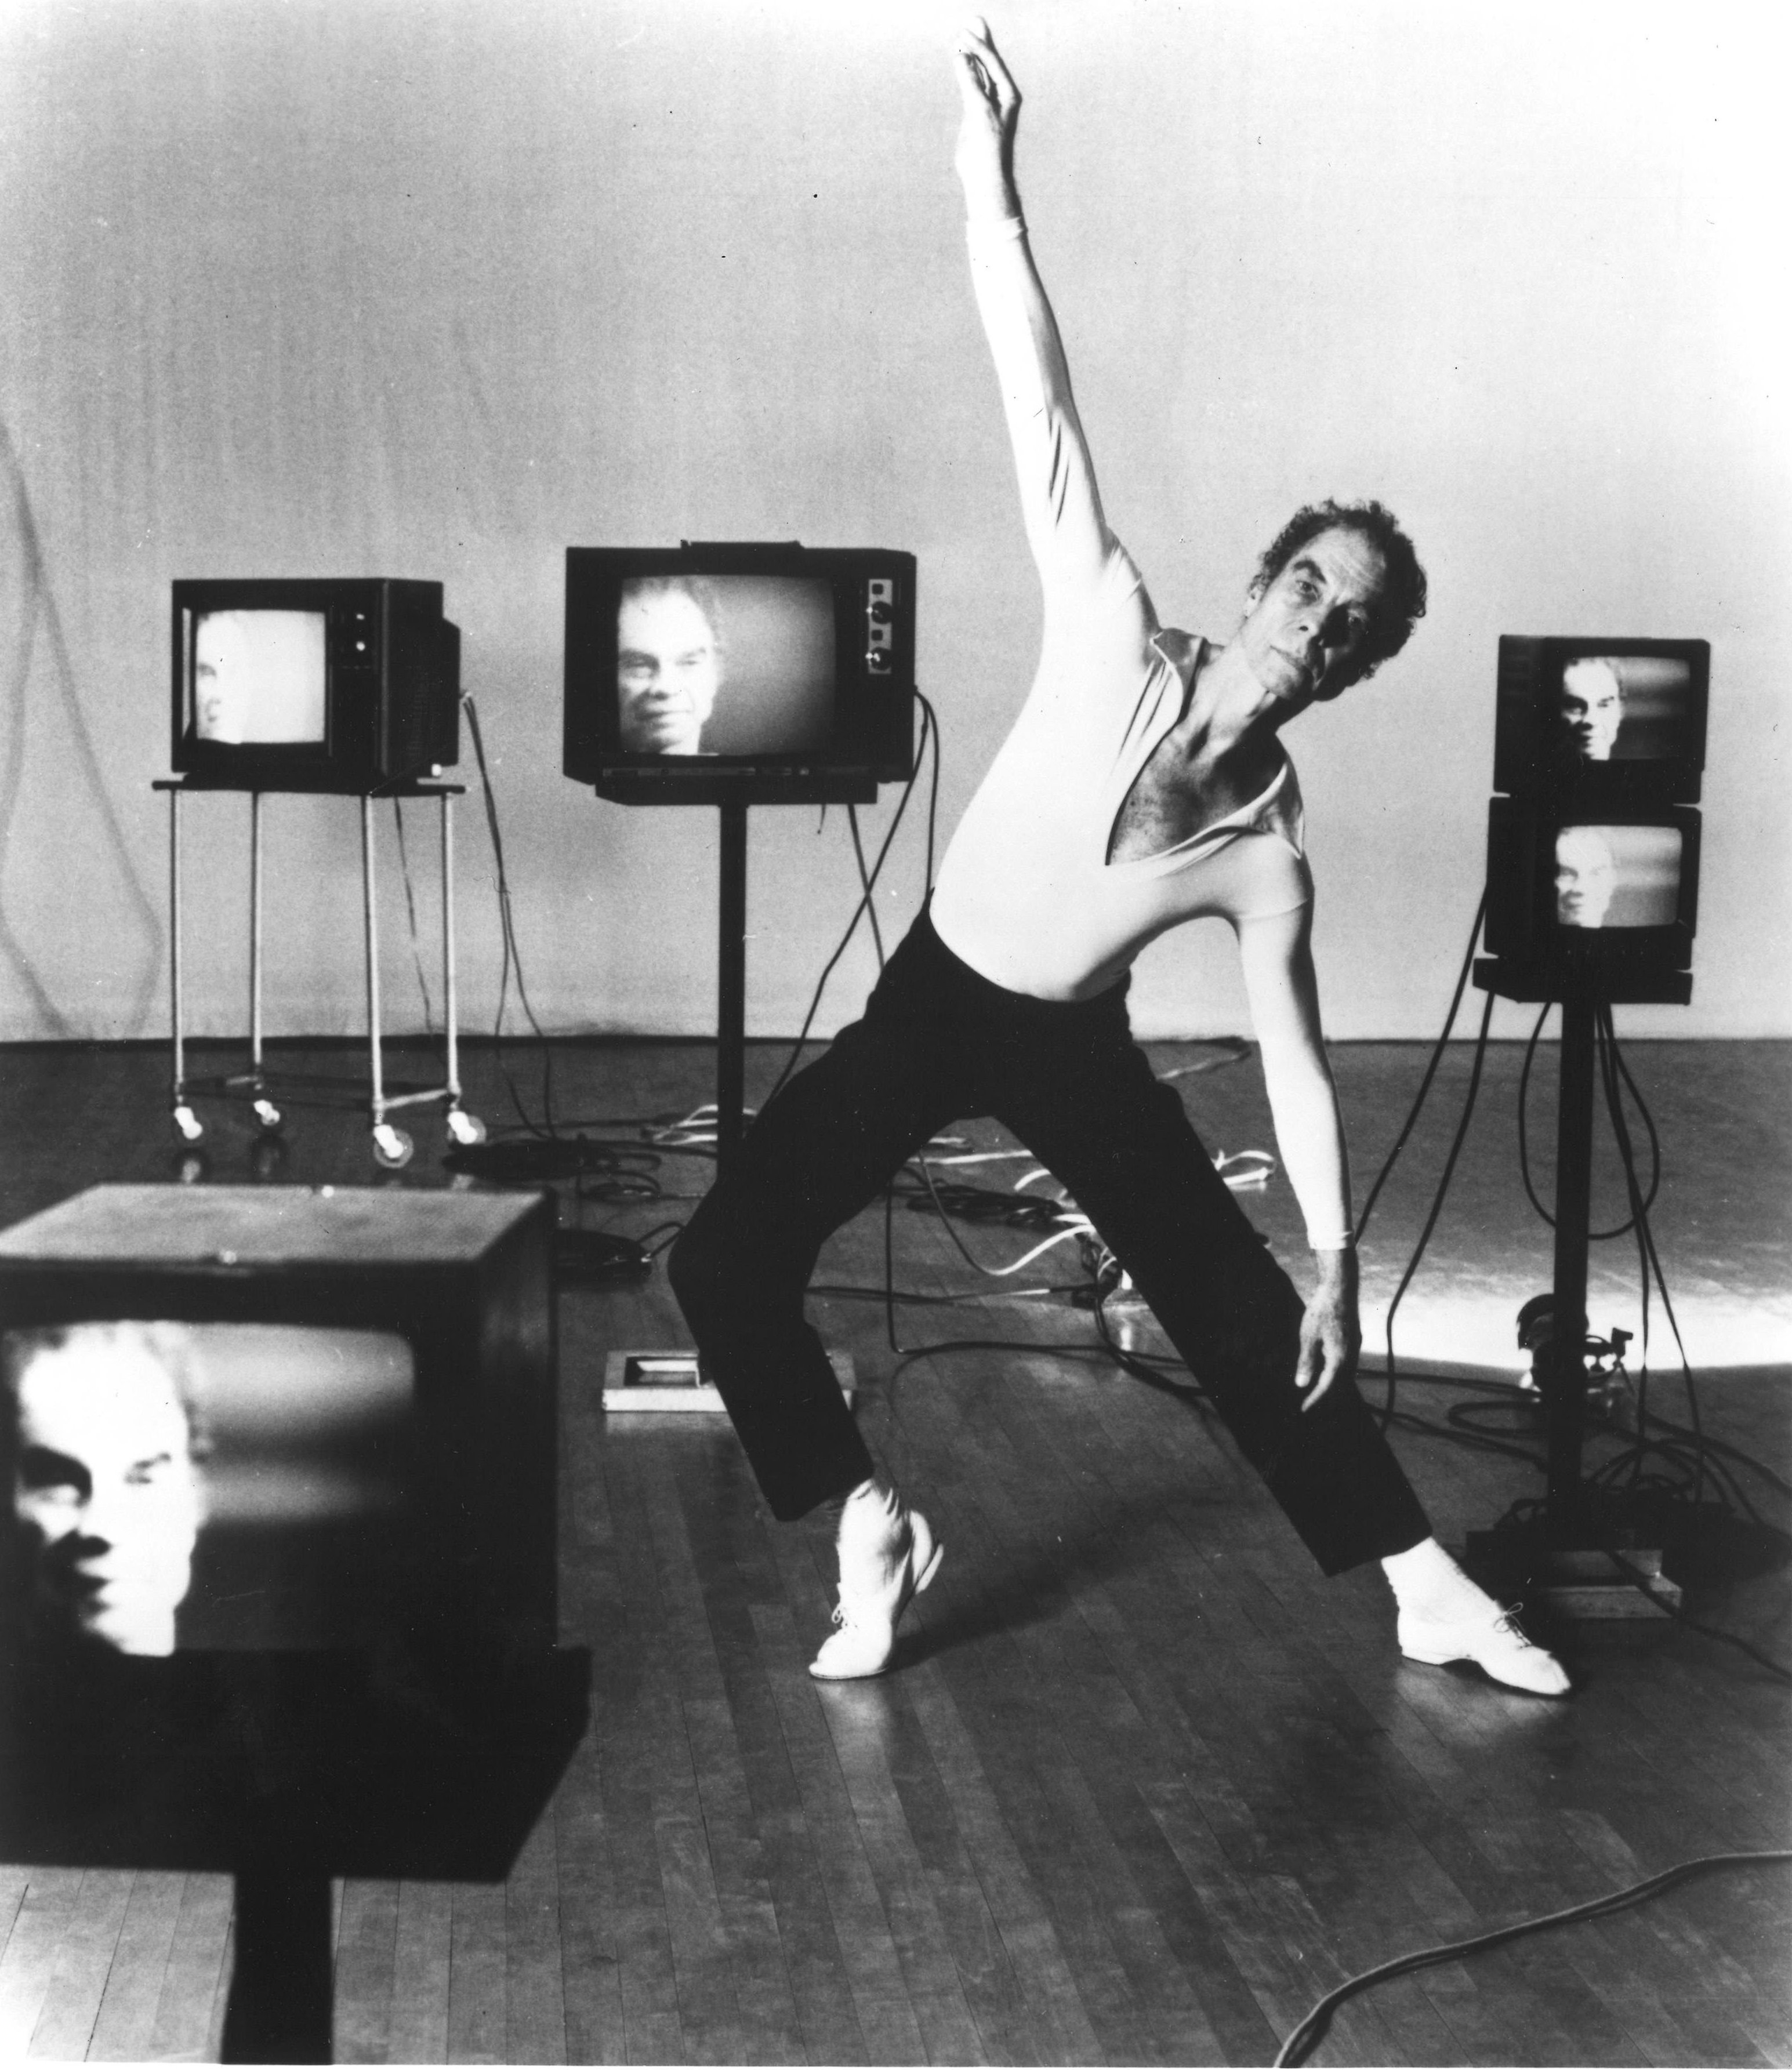 Five small, square television sets of various sizes show a blurry image of Merce Cunningham's face. Cunningham himself is in the middle of the seemingly random array, holding a side lunge with his right arm raised and right foot in forced arch.